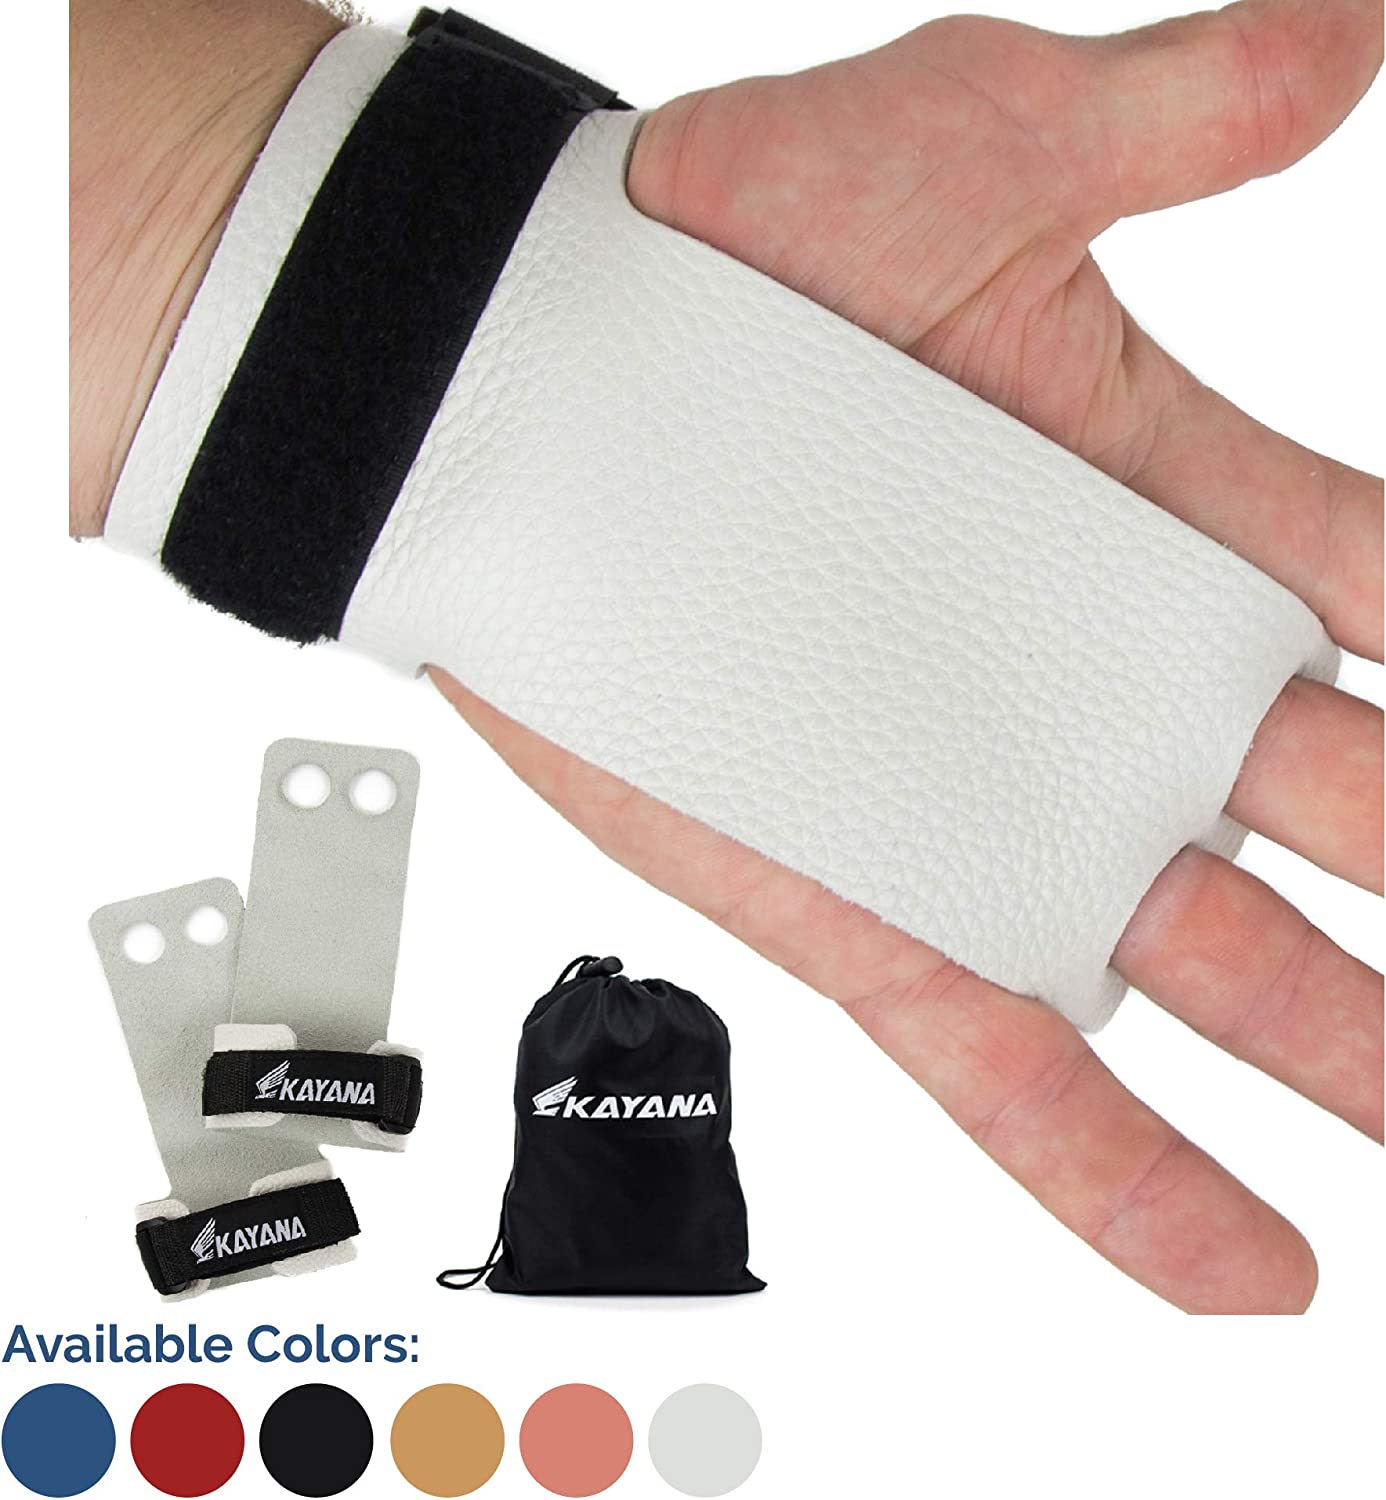 KAYANA 2 Hole Leather Gymnastics Hand Palm 40% OFF Cheap Sale Protection - an Grips Max 68% OFF